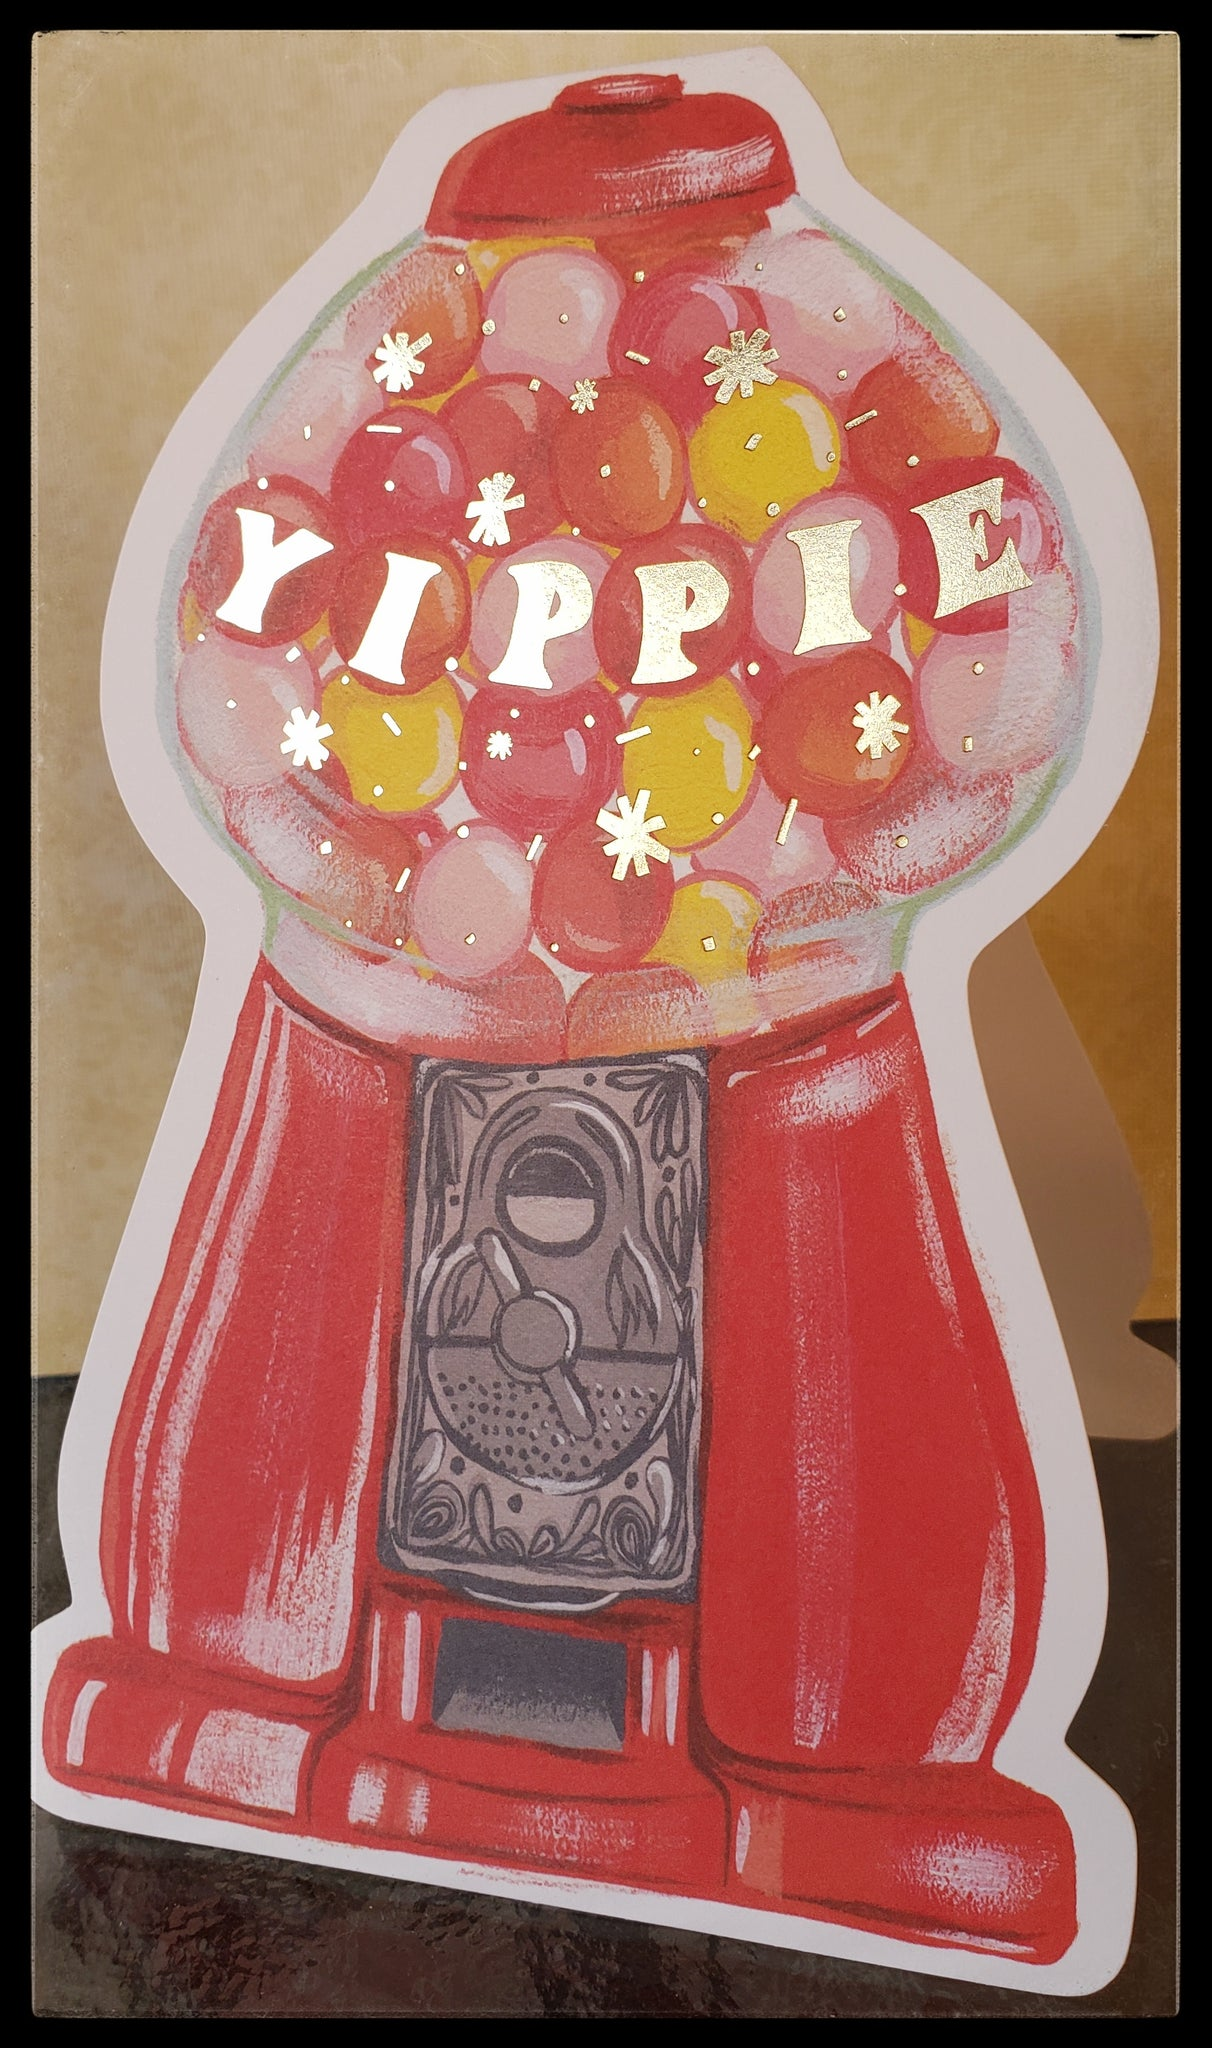 "Front message Yippie gum ball machine BLANK INSIDE  Gold accents   Free standing die cut   5.5"" x 7.5"" with envelope ADA The Gilded Page Santa Fe New Mexico"